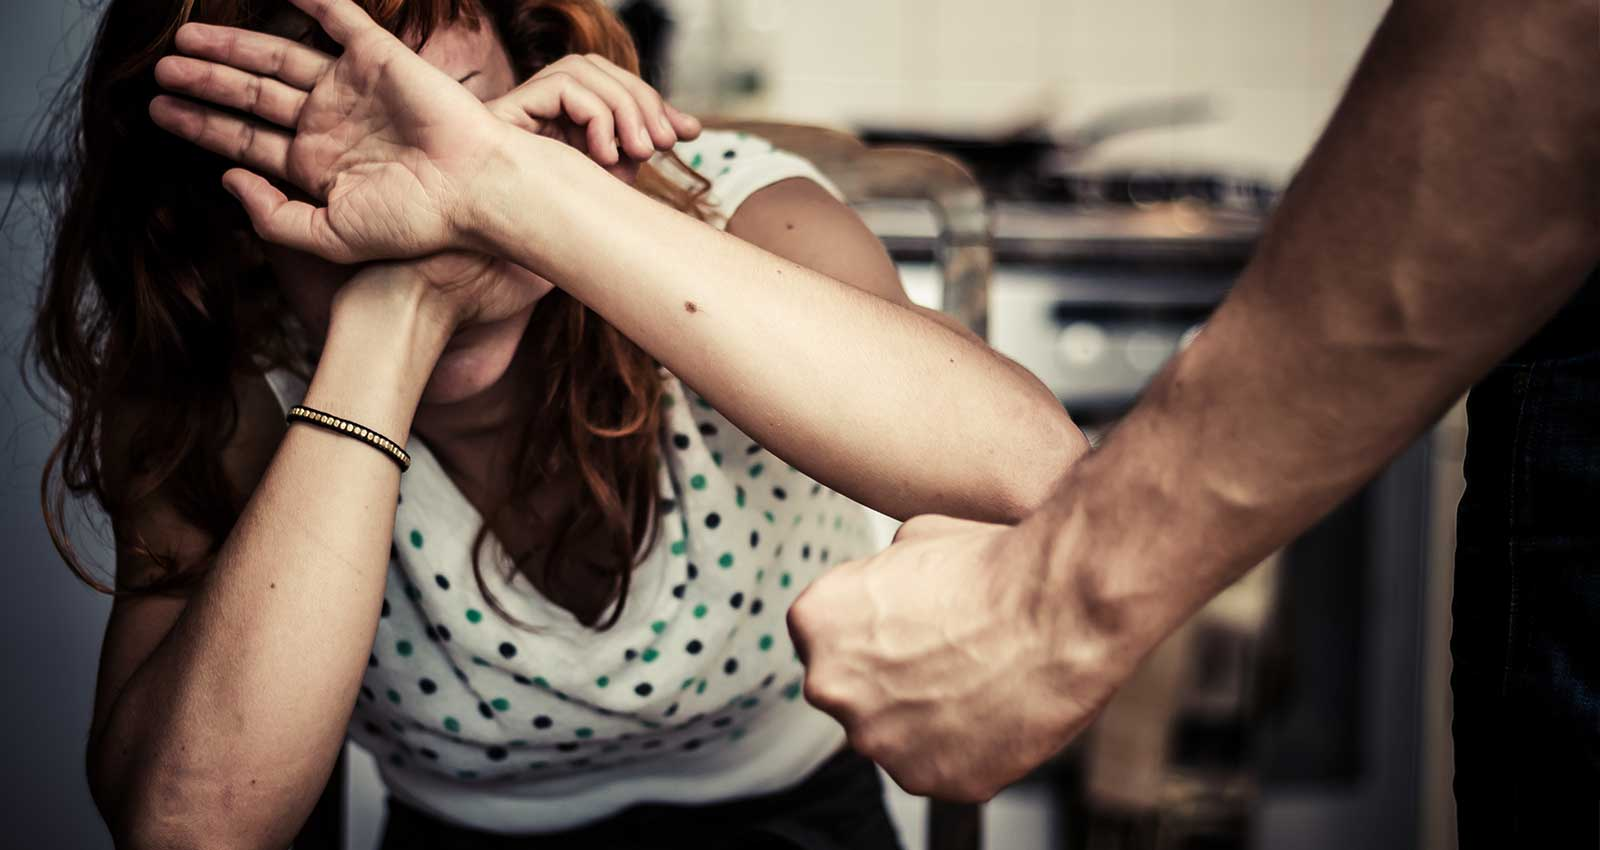 A woman cowering as a man raises his fist in a domestic violence situation